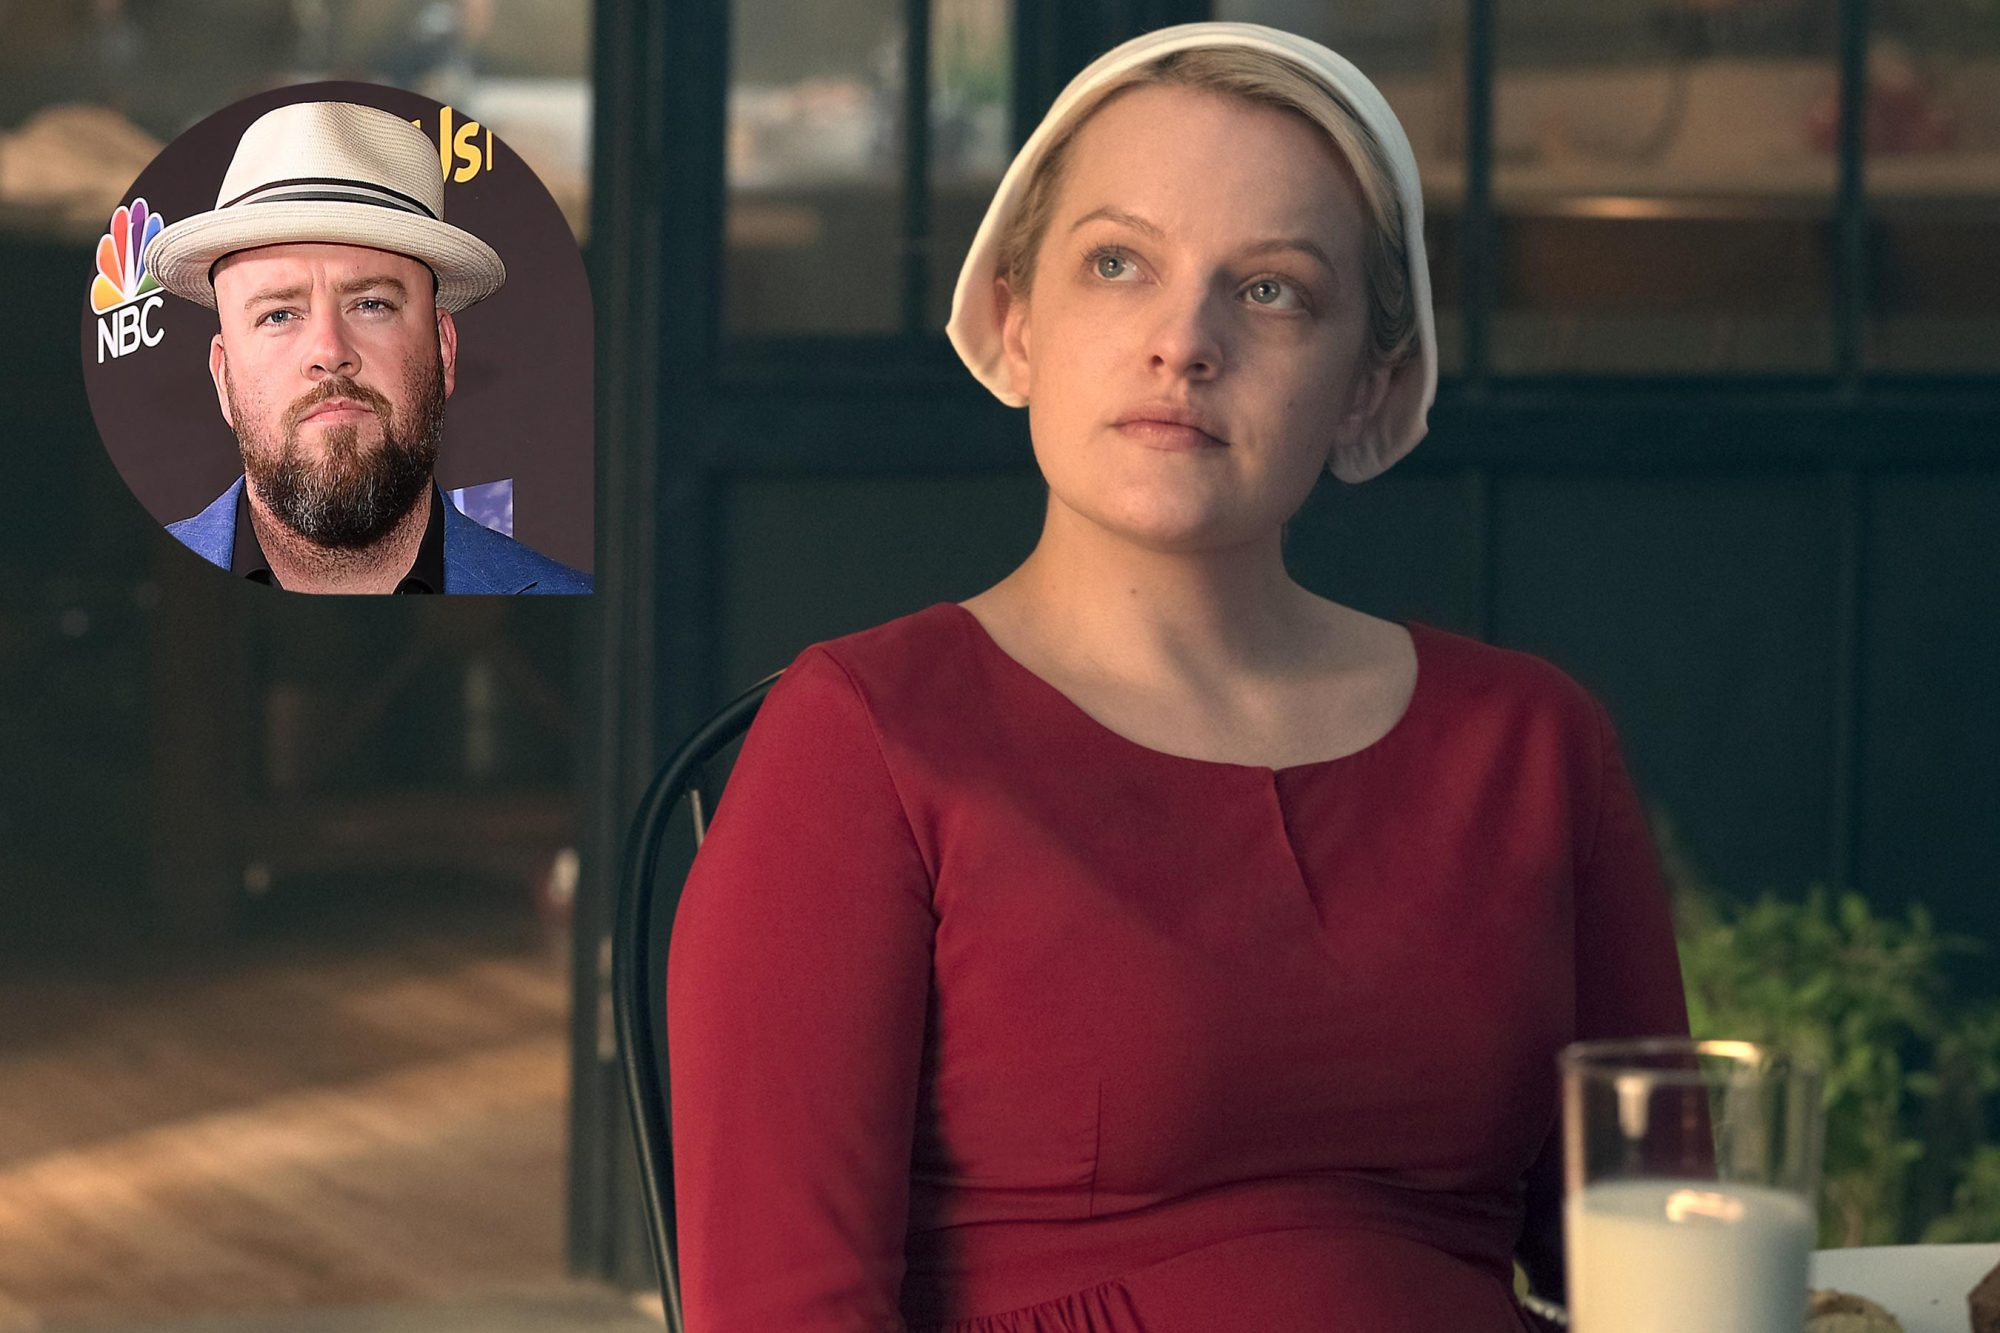 Chris Sullivan | The Handmaid's Tale